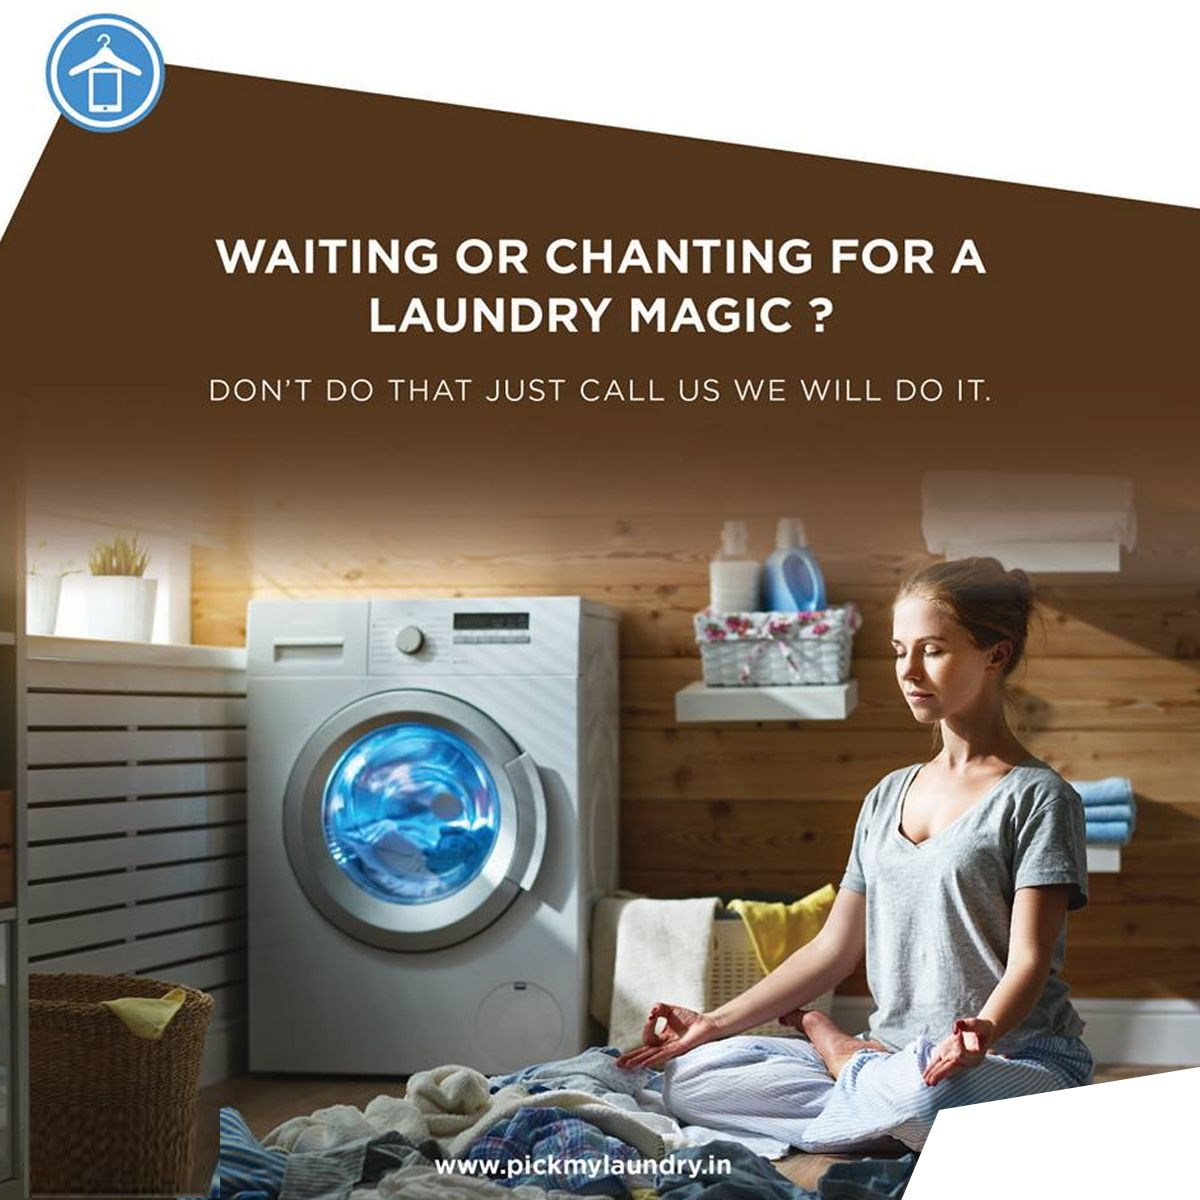 Magic Chants Wont Works On The Laundry Just Call Us We Will Do It